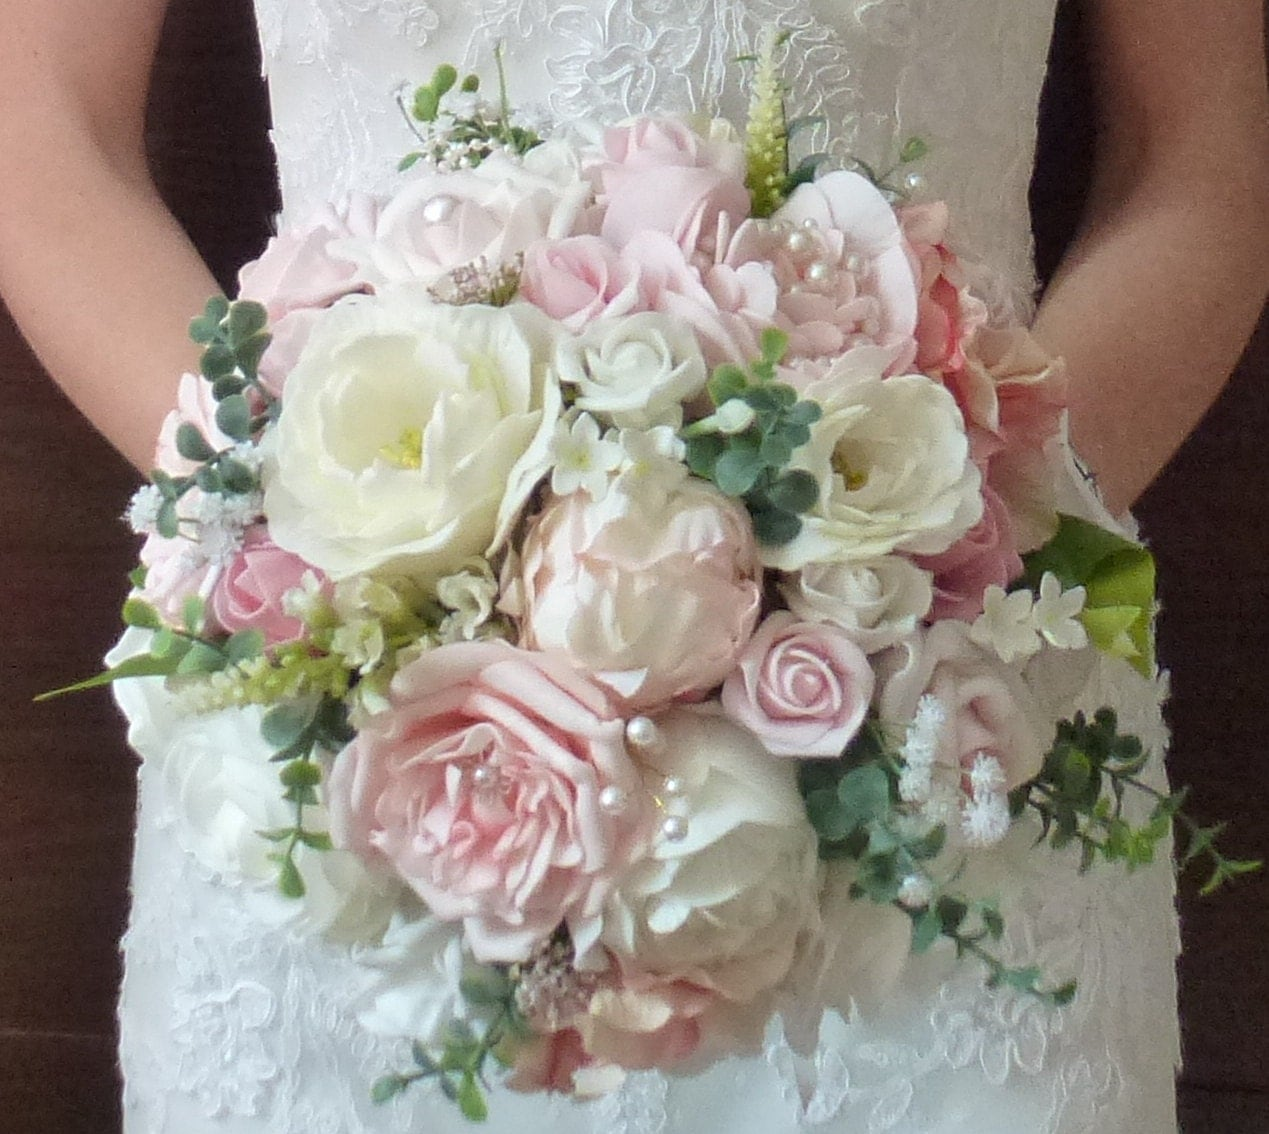 Pastel Wedding Flowers: Bespoke Vintage Pastel Blush Dusky Pink And Ivory Rose And